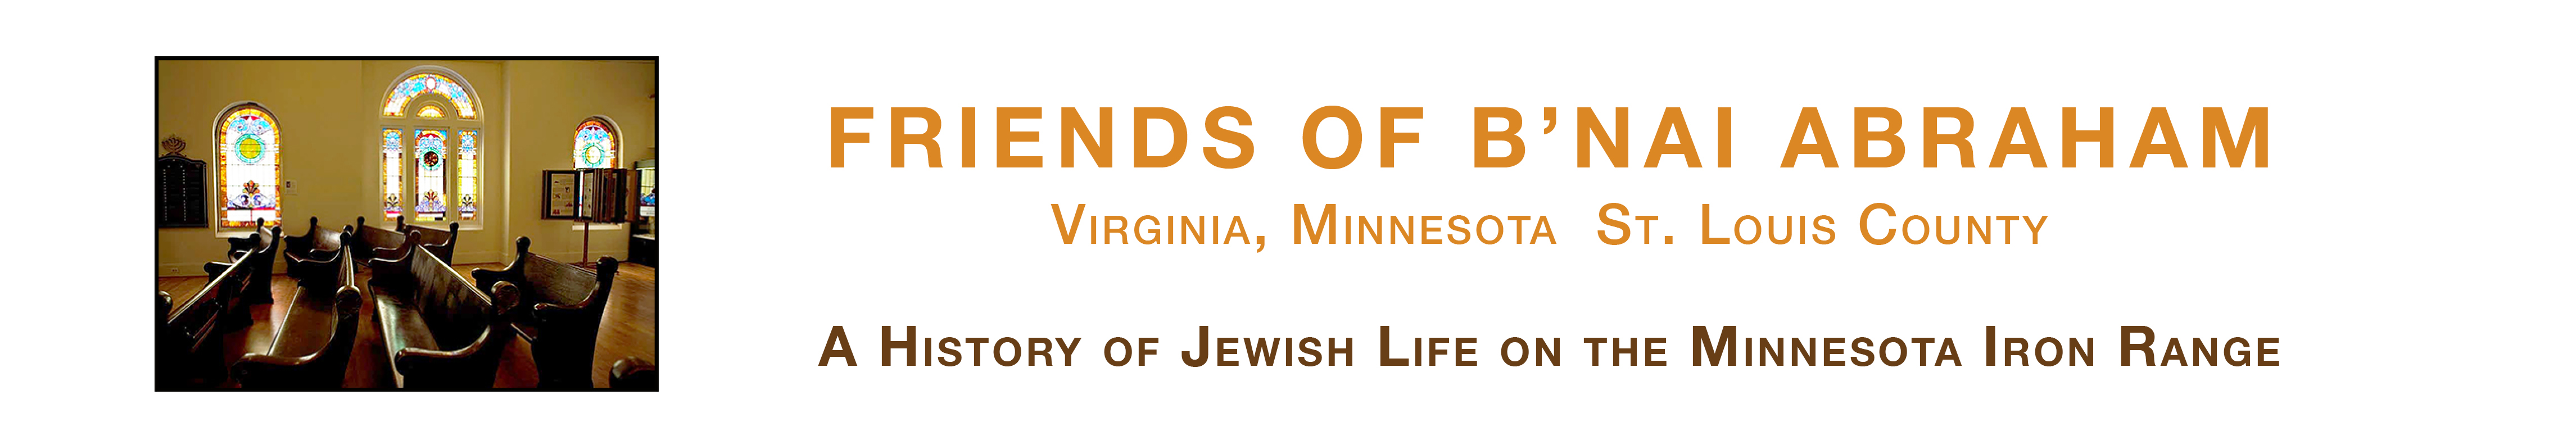 Friends of B'nai Abraham